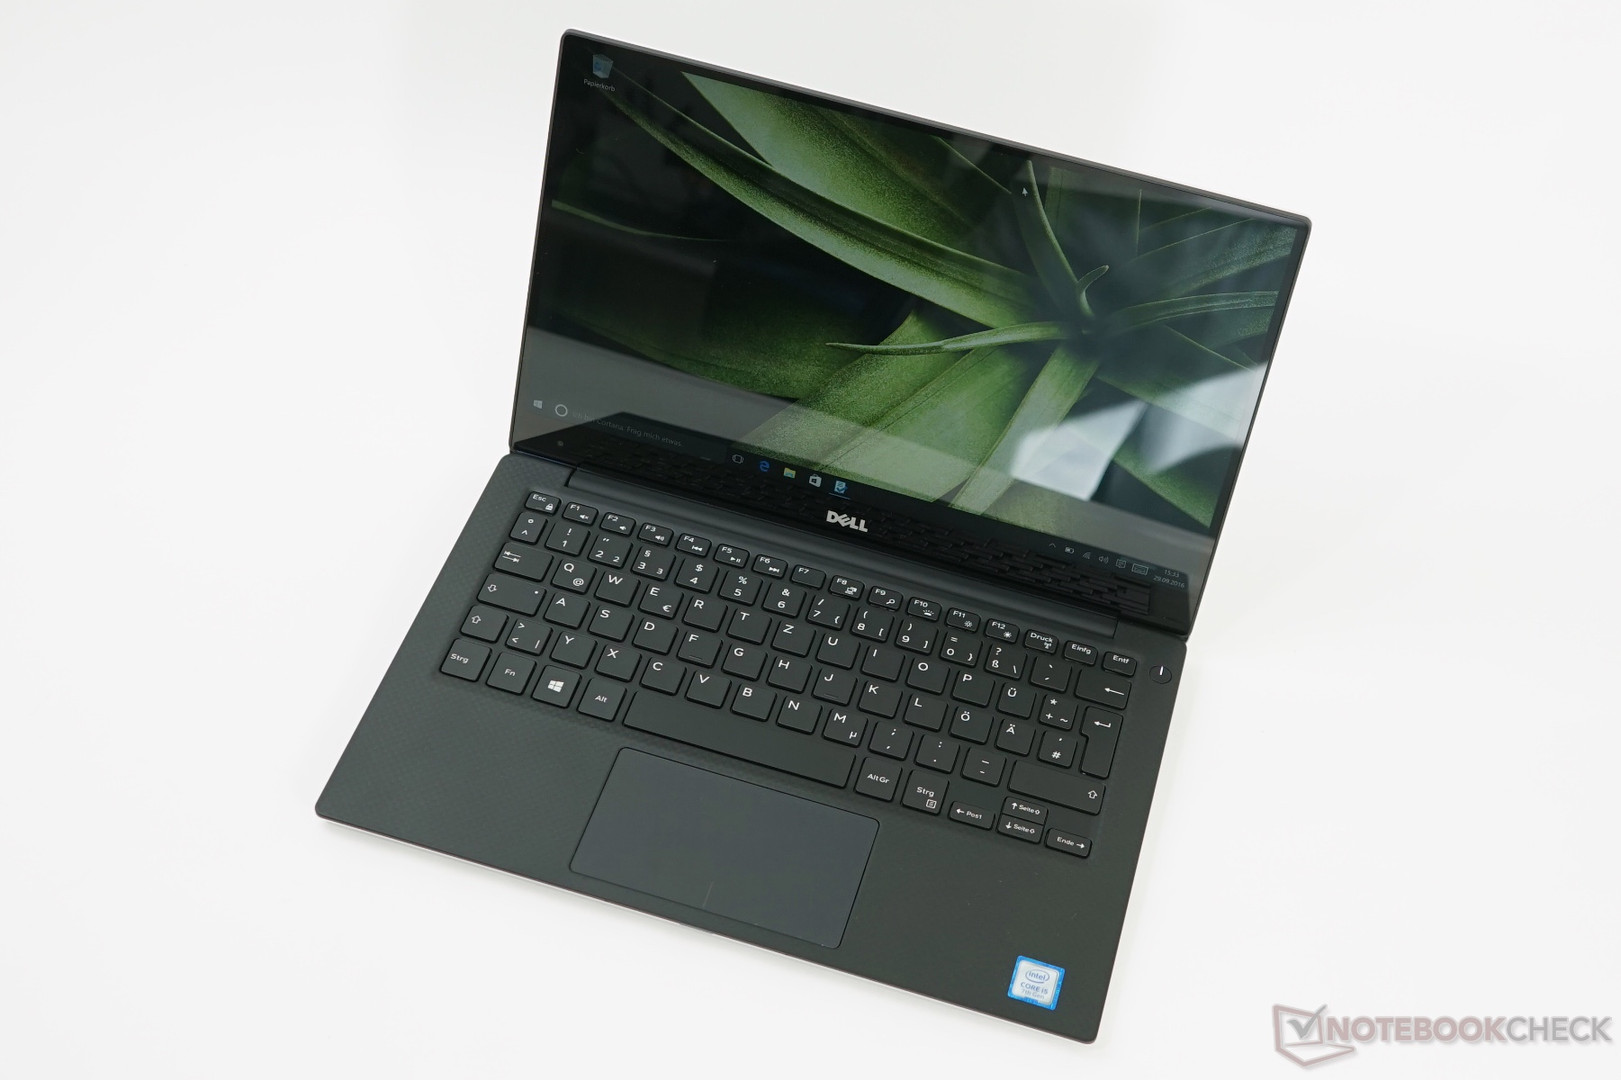 Dell XPS 13 9360 (FHD, i7, Iris) Laptop Review - NotebookCheck.net Reviews